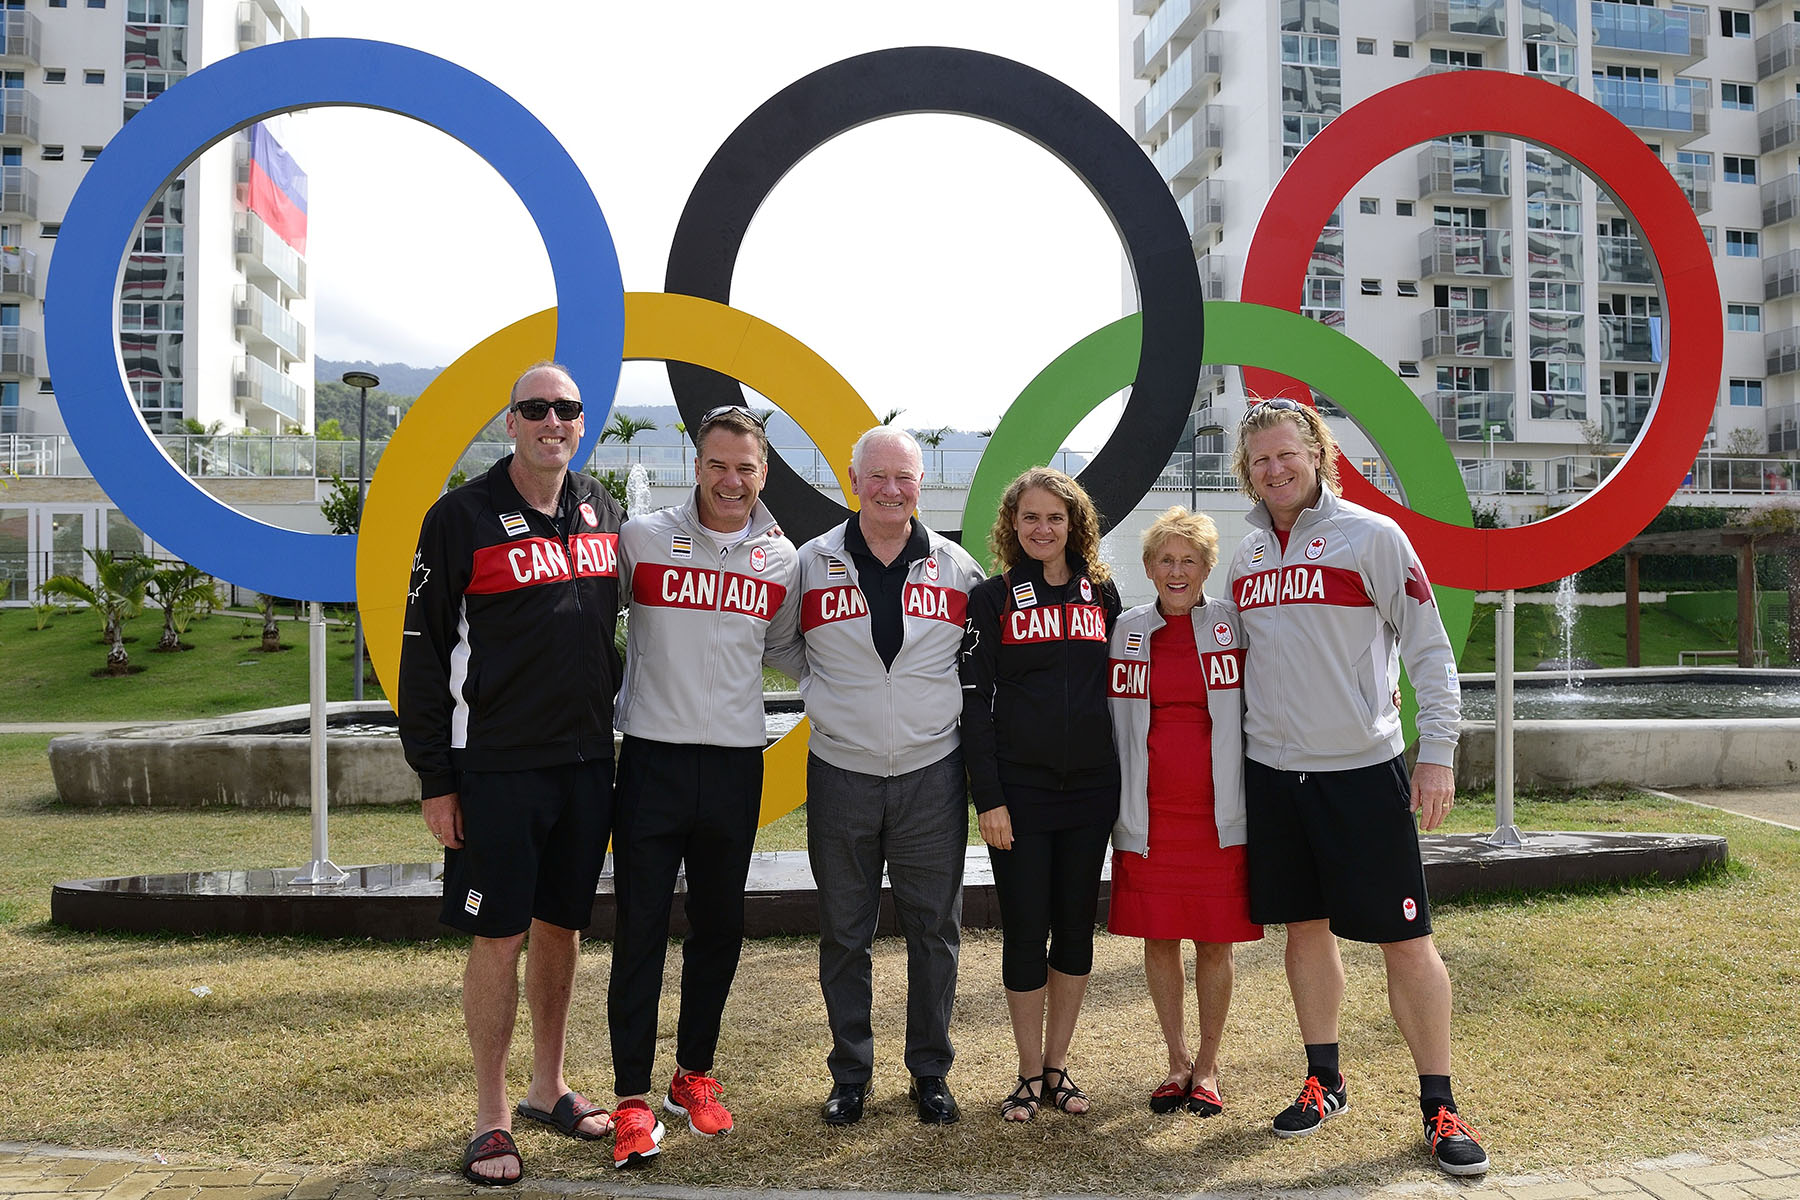 Their Excellencies had the opportunity to interact with representatives from the Canadian Olympic Committee.